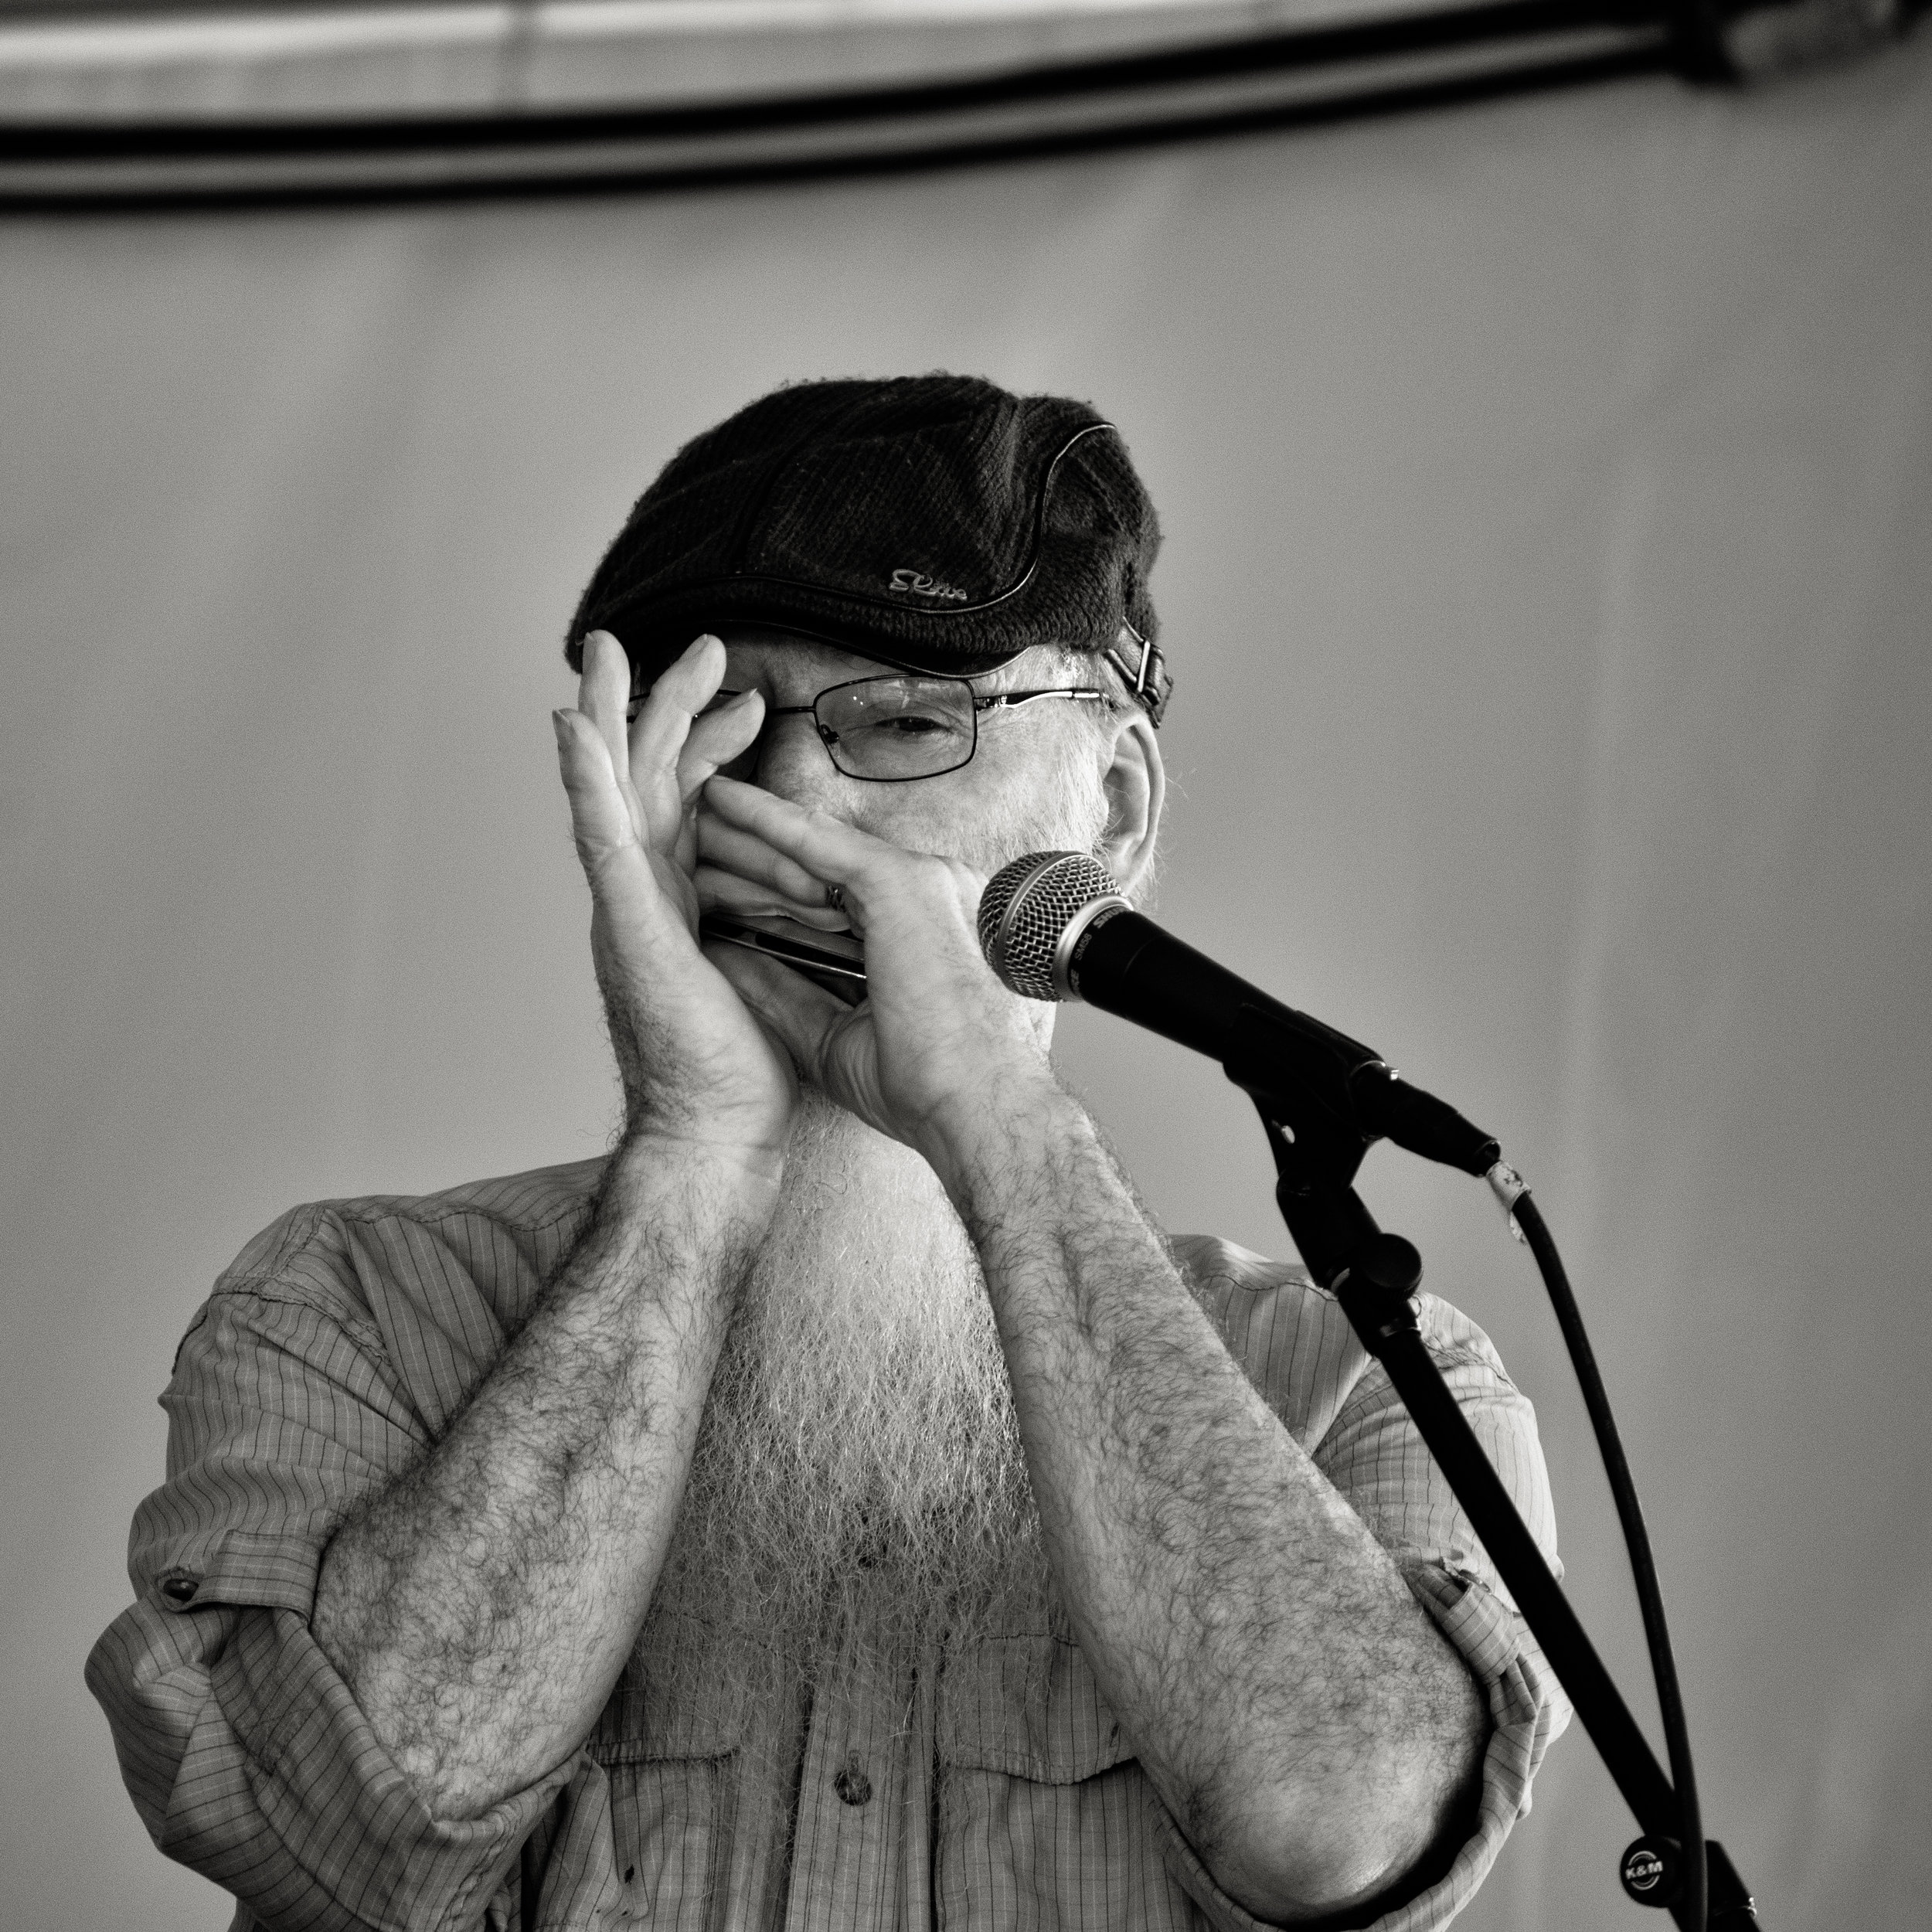 Harmonica guy performing at the fair